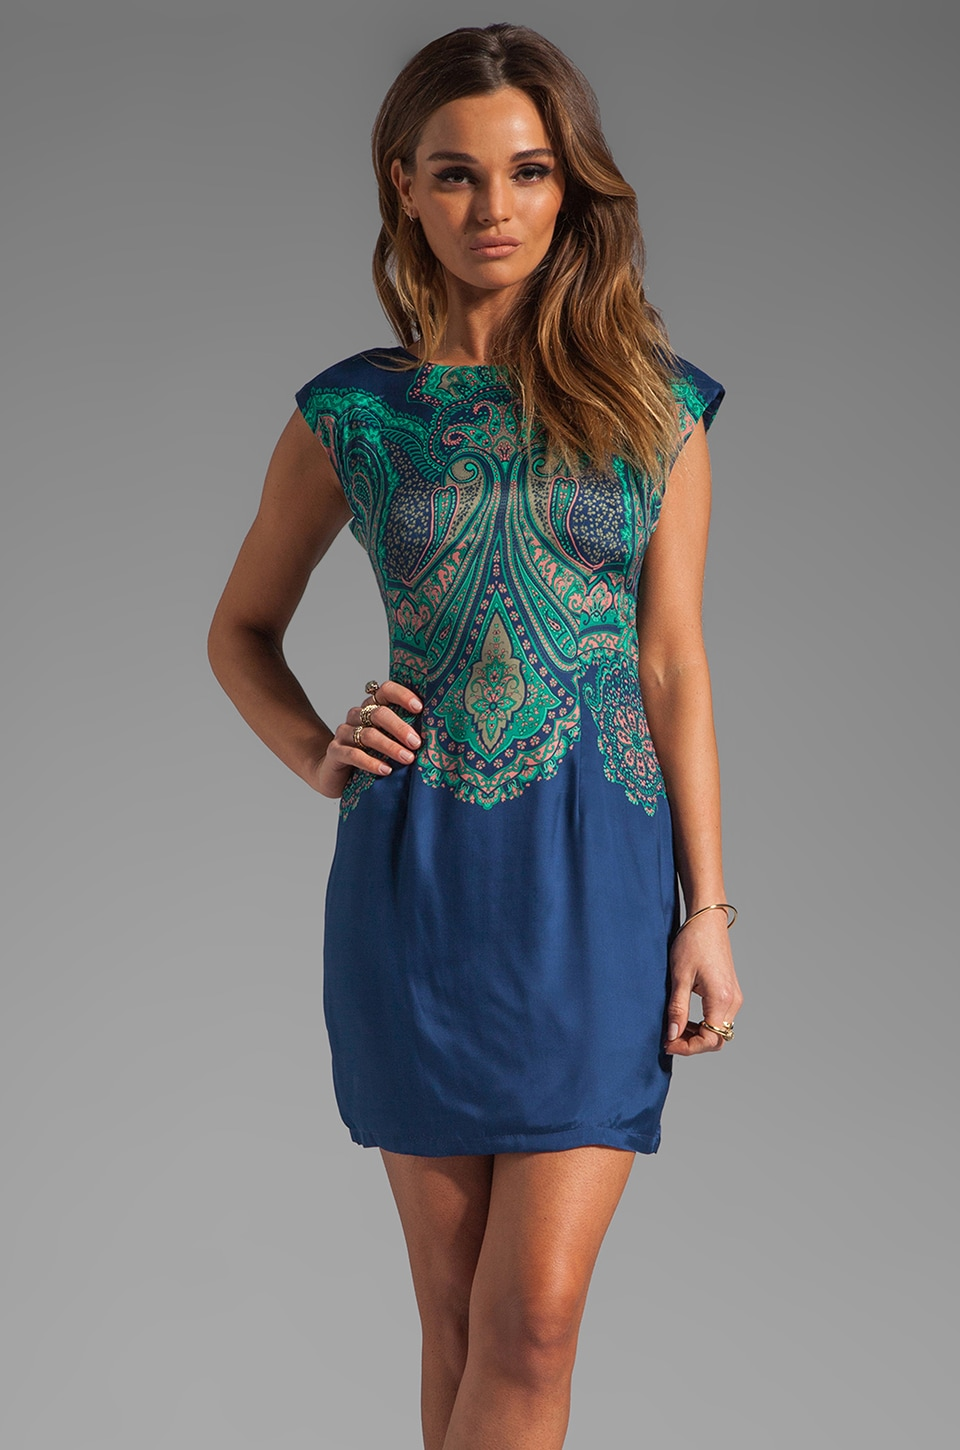 Tracy Reese Wide Awake Foulard Placement V Back Shift Dress in Cobalt